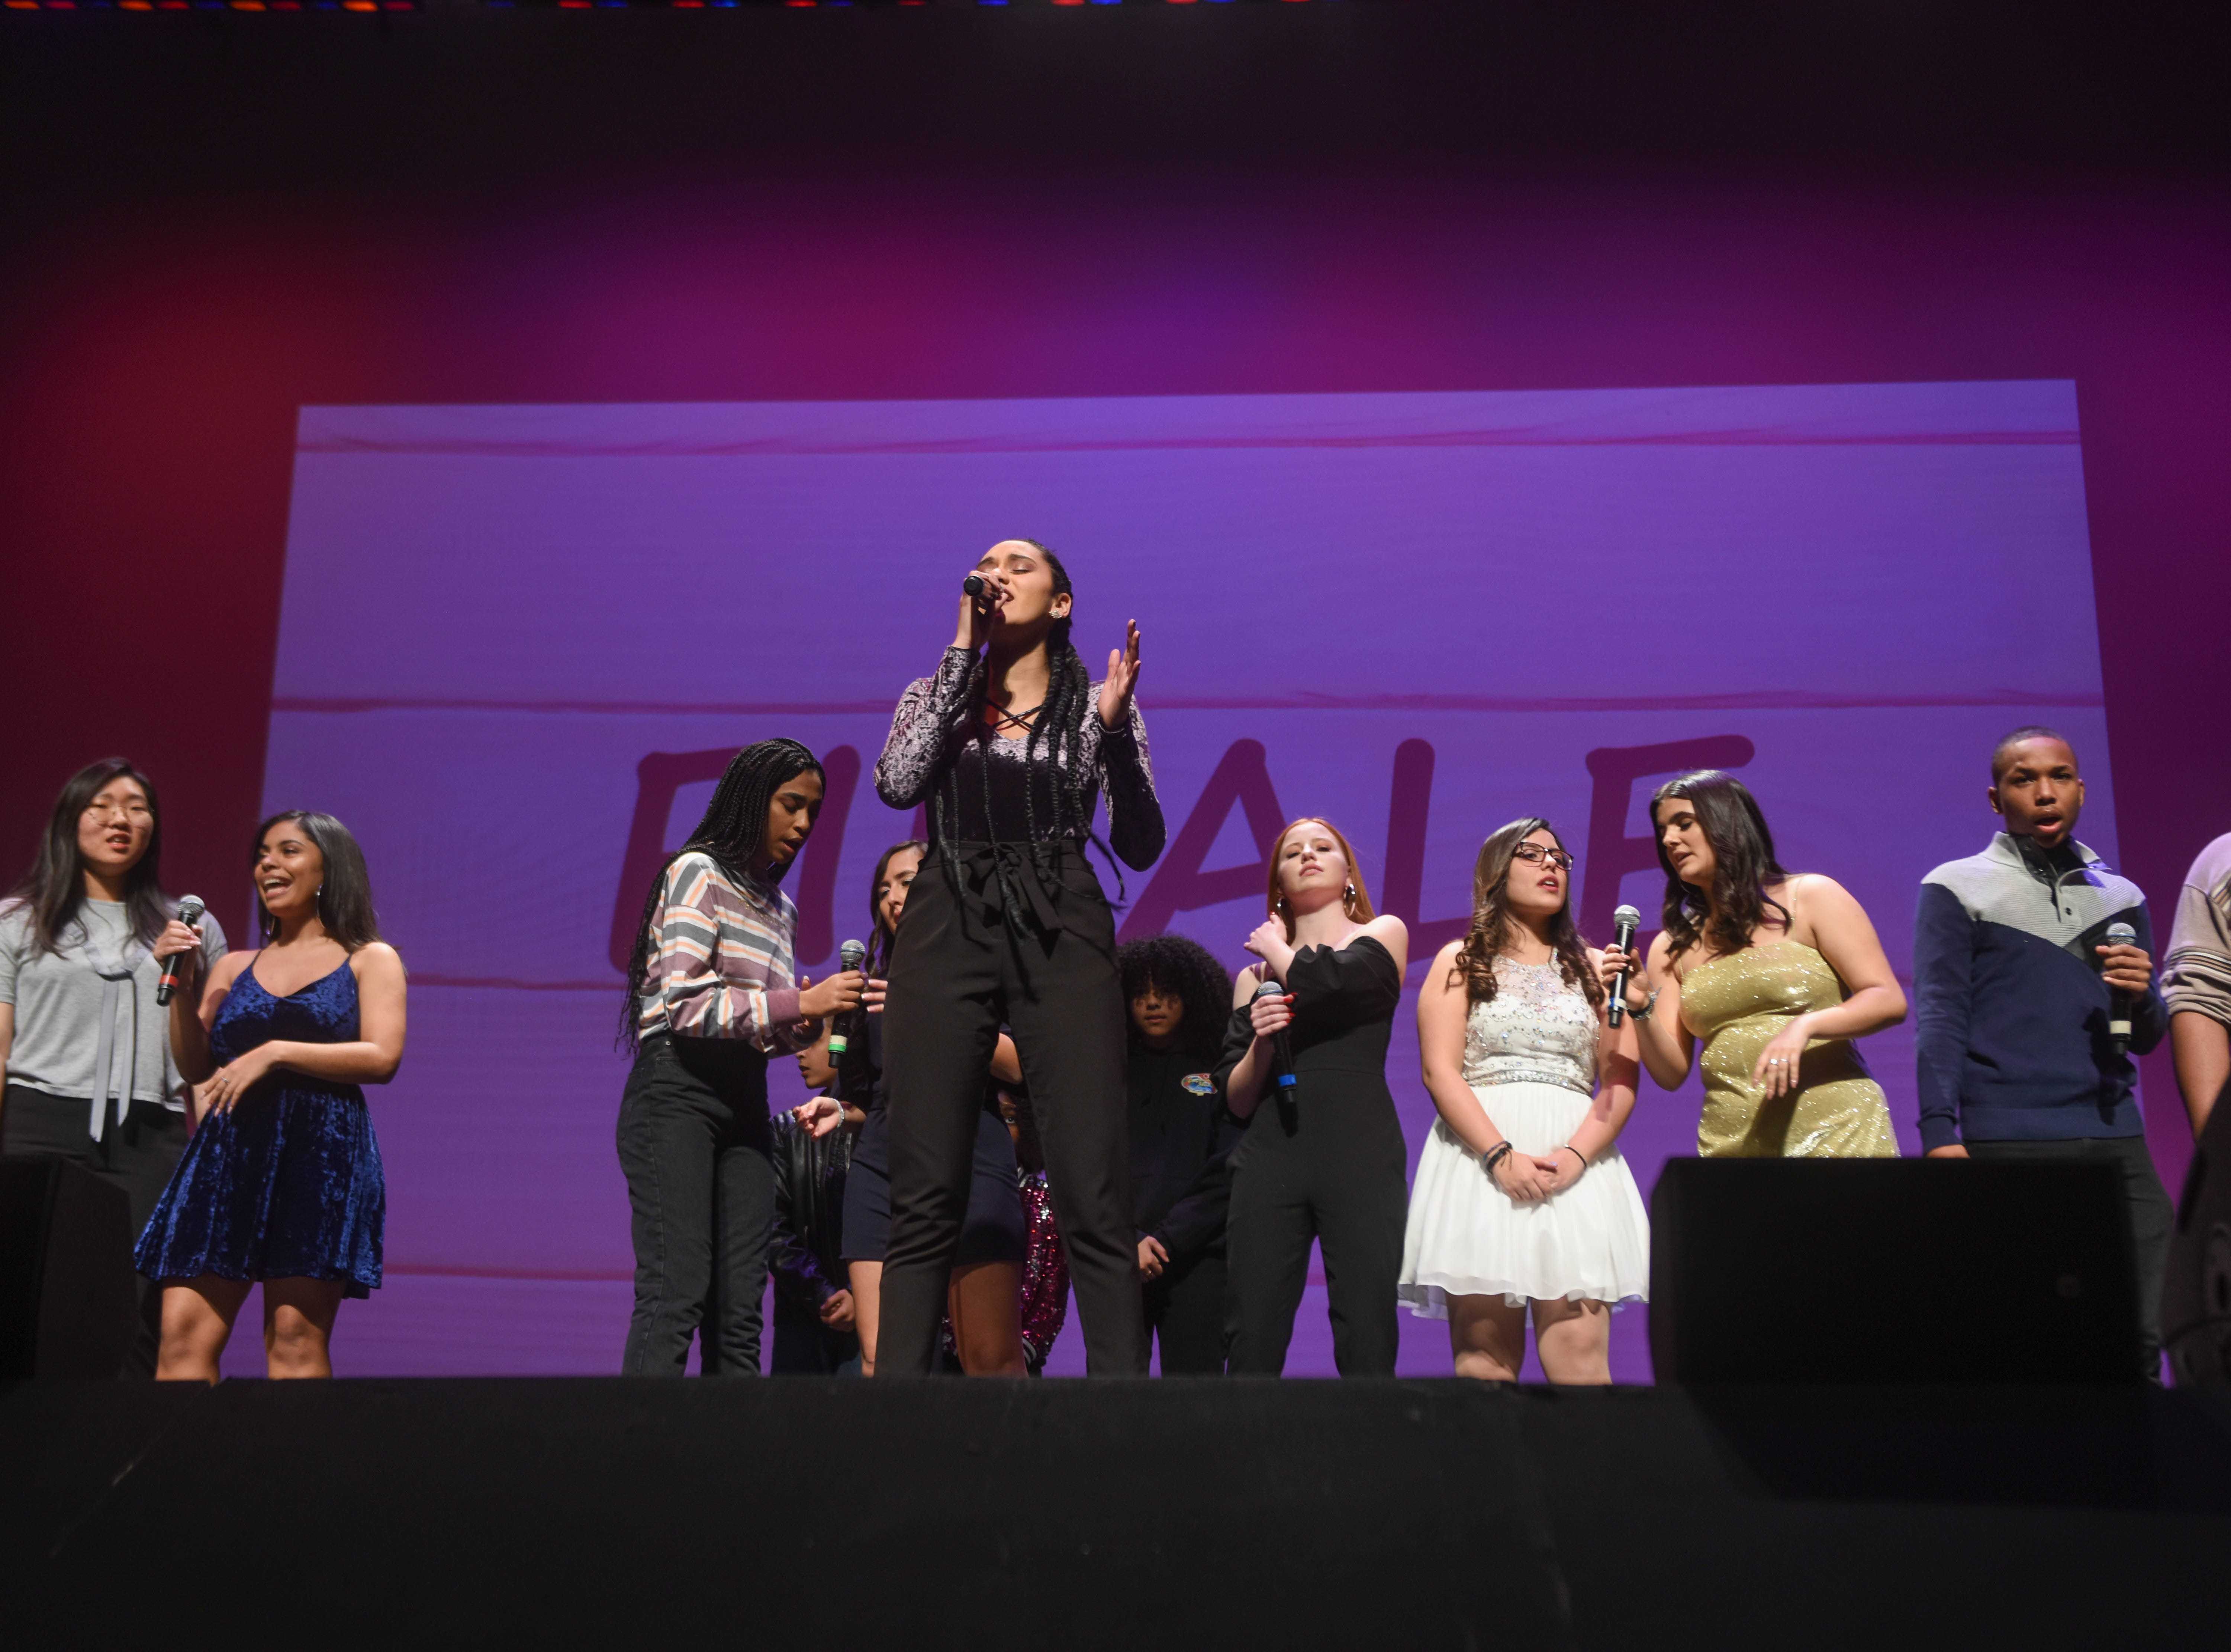 The 2019 Englewood Idols perform together. The 2019 Englewood Idol was held at bergenPAC theater. The singing competition is open to any high school student who currently lives or goes to school in Englewood, NJ. This years winner was Genesis Capellan. 01/11/2019